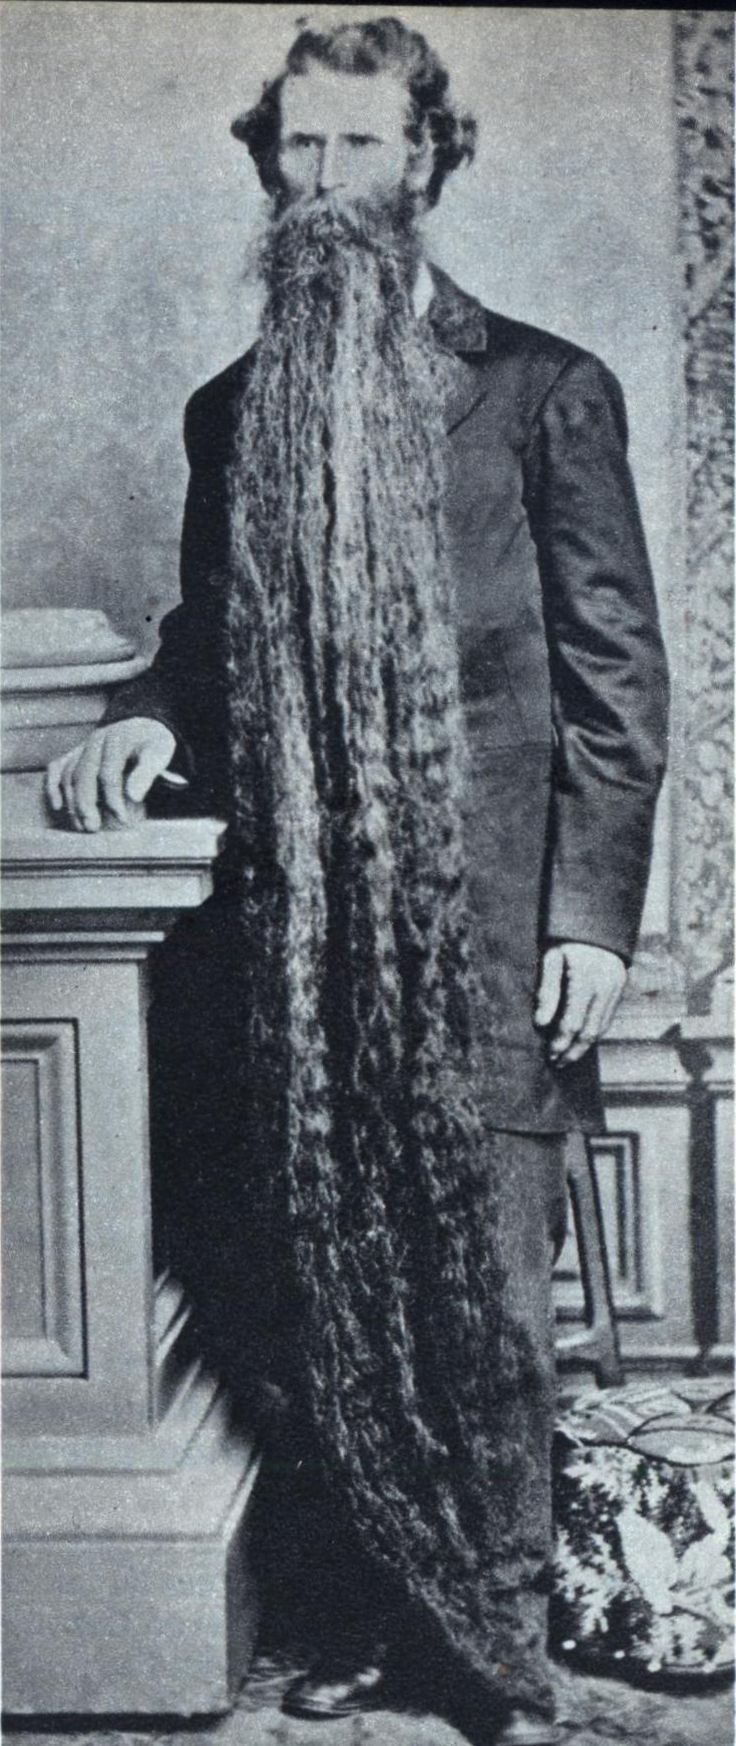 """4.16 Friday 13th 1902: Uncle Jeb's beard - his pride and glory -  ultimately was his undoing when he tripped over it and fell down the stairs, sadly ending his, and its, 12 year reign as """"Champion Beard of Illinois""""."""